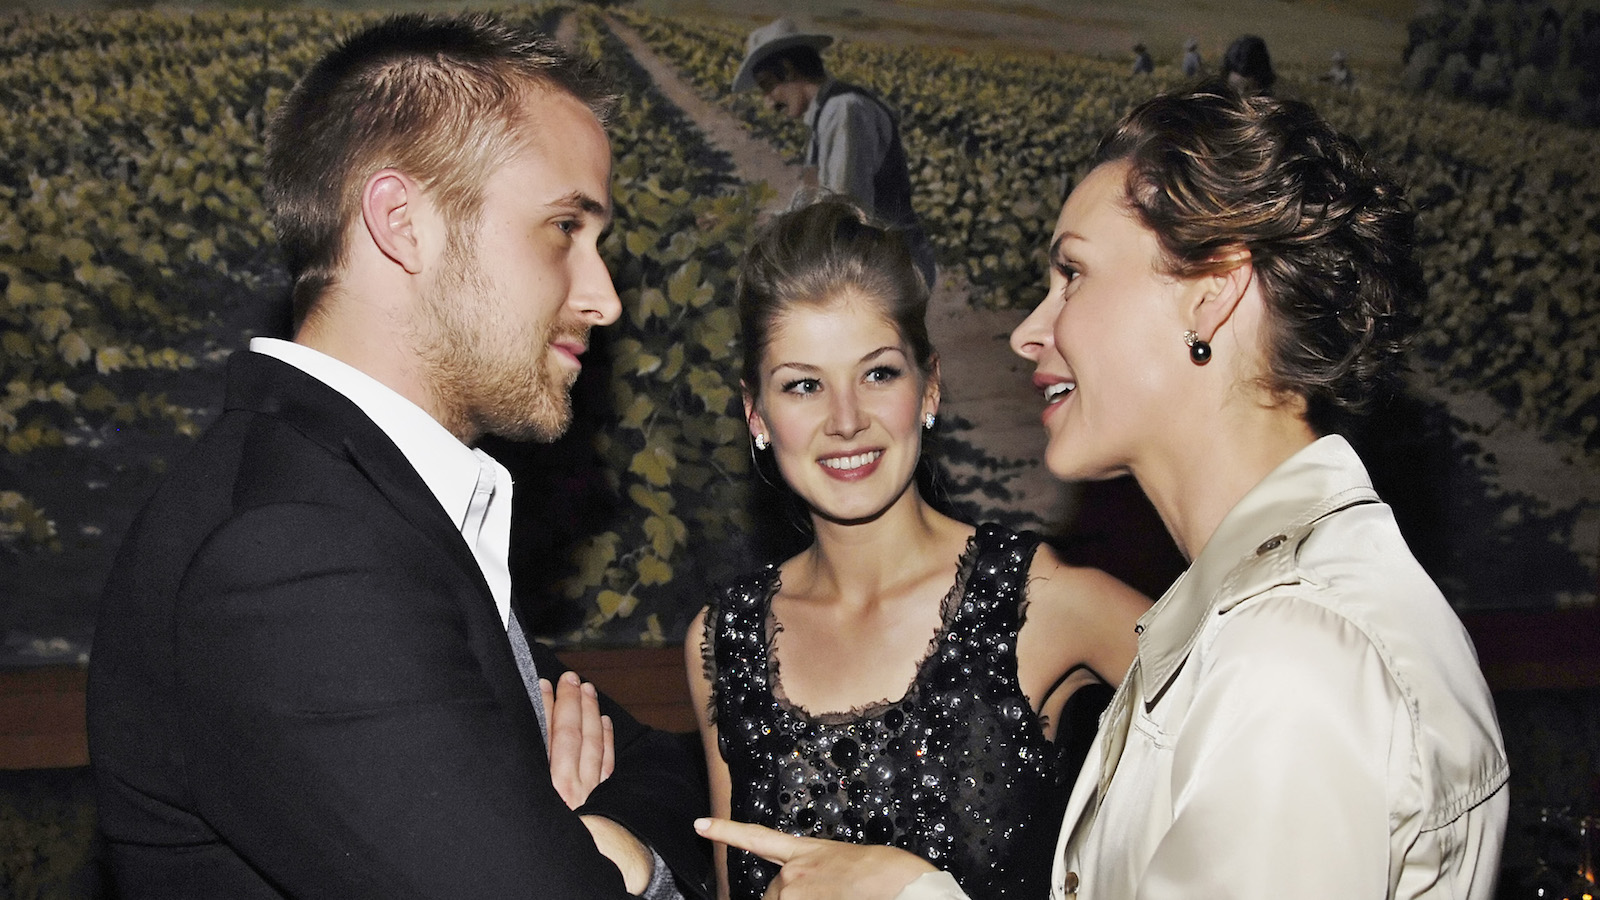 """""""Fracture"""" cast member Ryan Gosling, left, mingles with fellow cast members Embeth Davidtz, right, and Rosamund Pike at the post-premiere party for the film in Los Angeles, Wednesday, April 11, 2007. (AP Photo/Chris Pizzello)"""